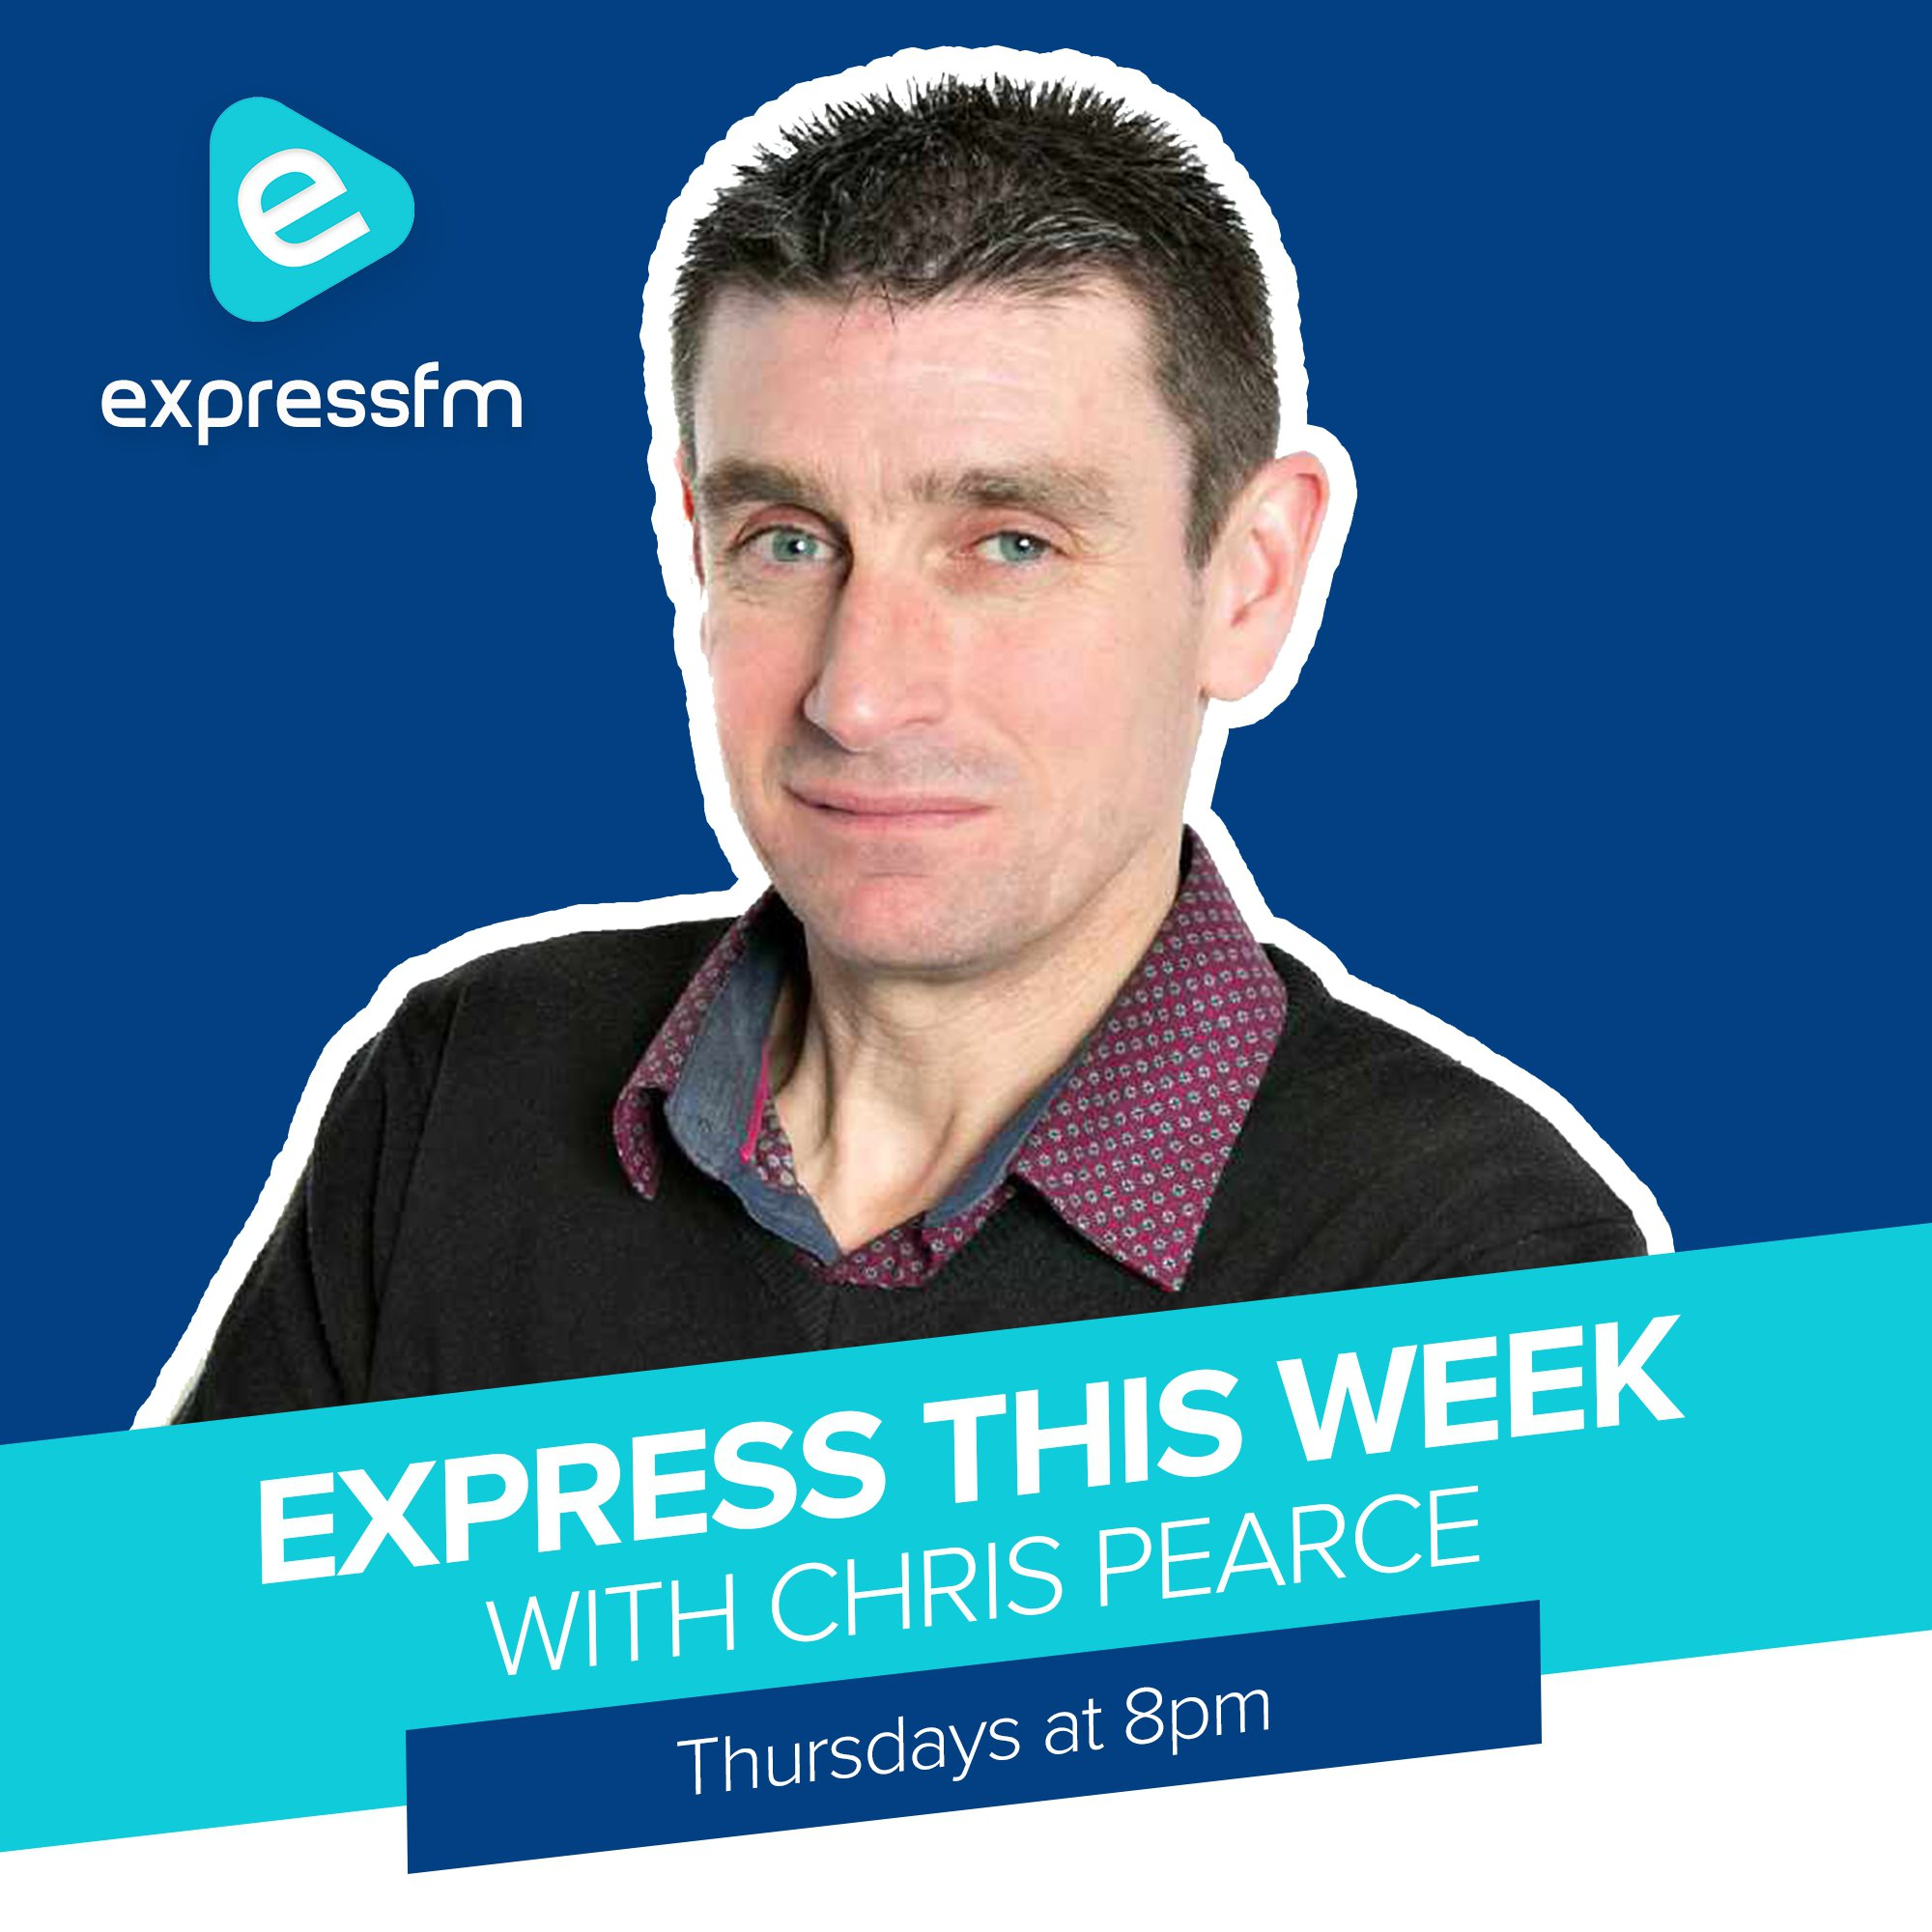 Express This Week